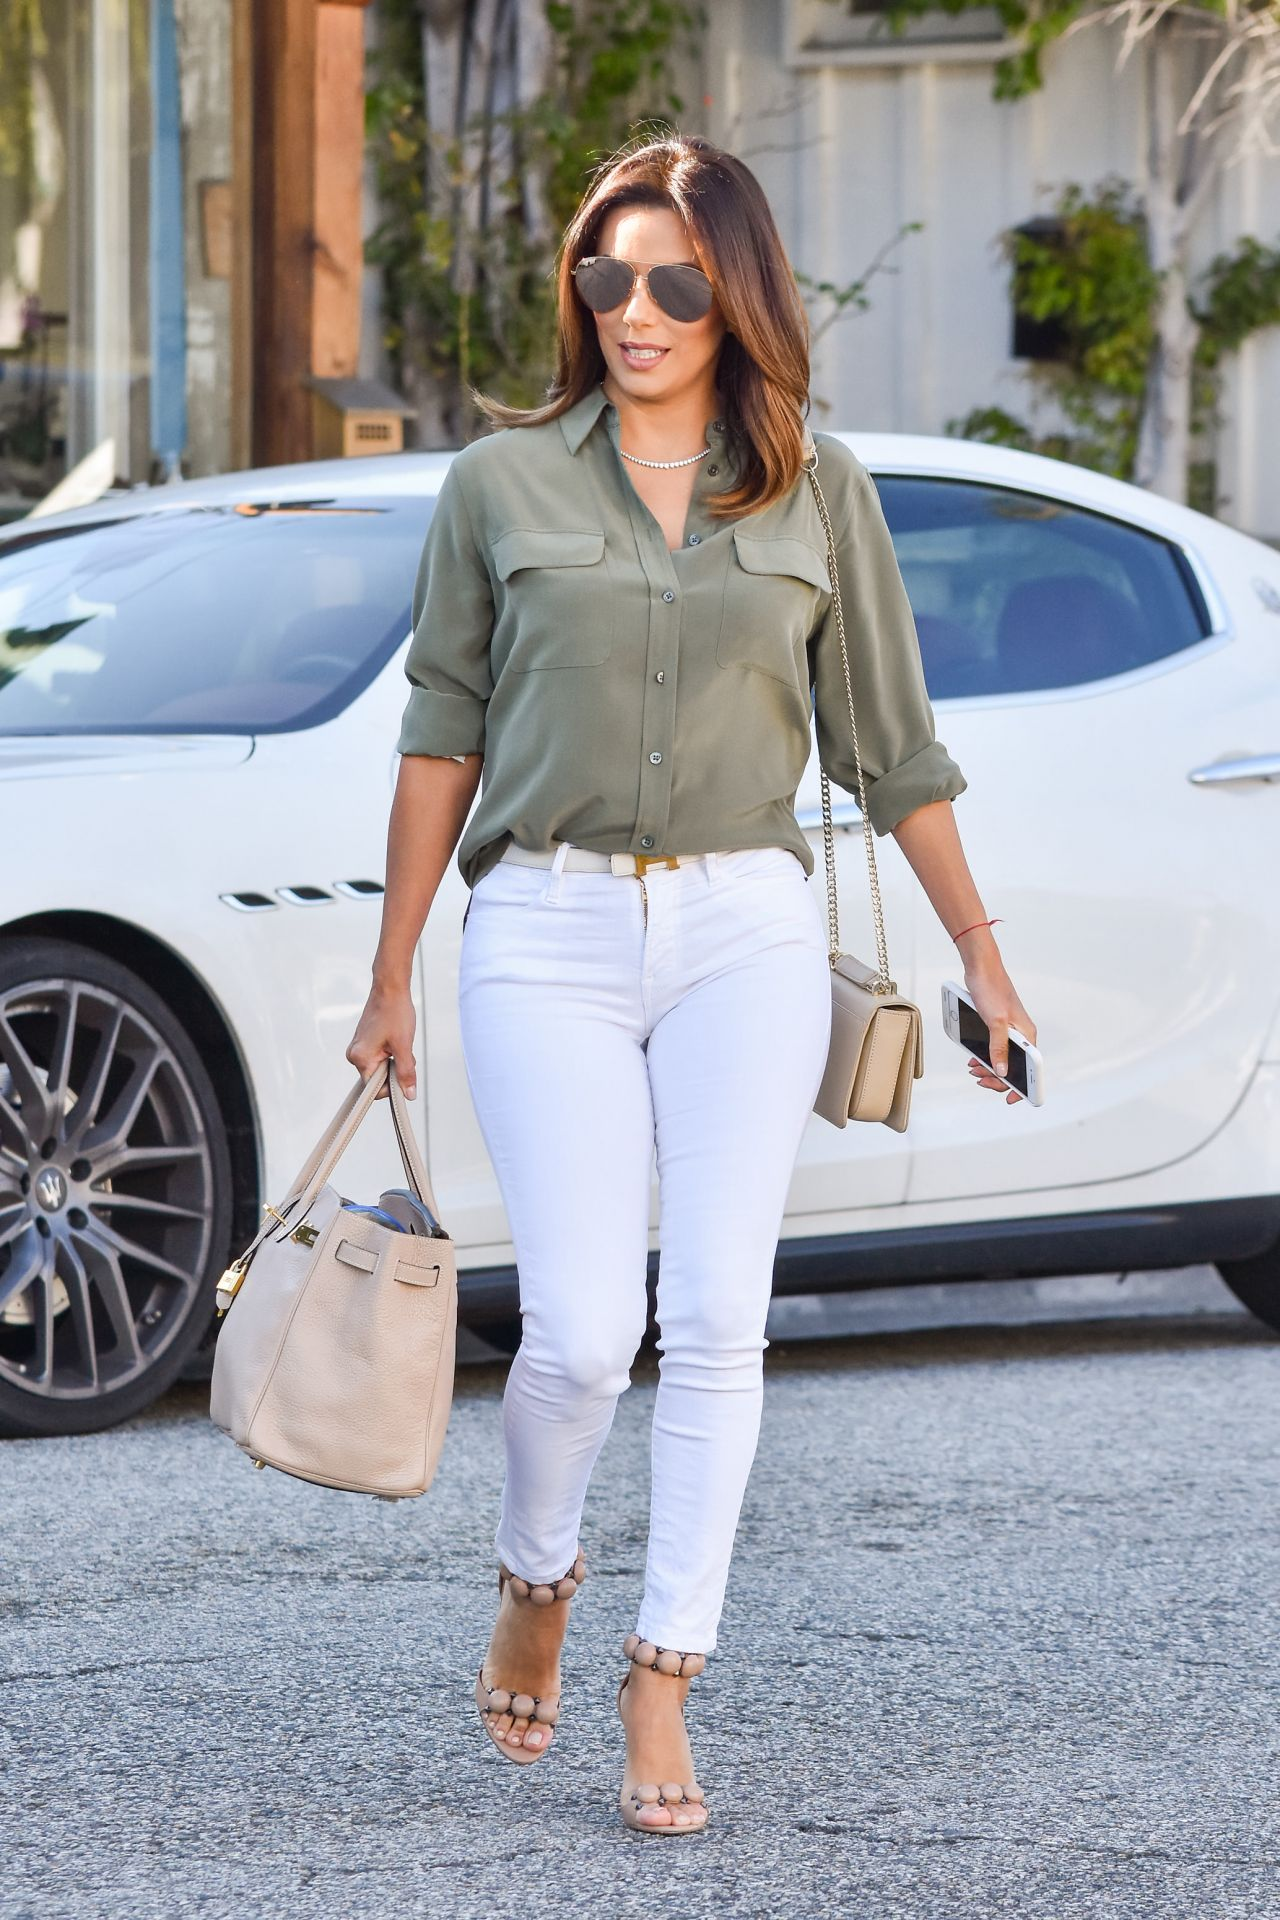 Eva Longoria Style Out In Los Angeles 1 25 2017